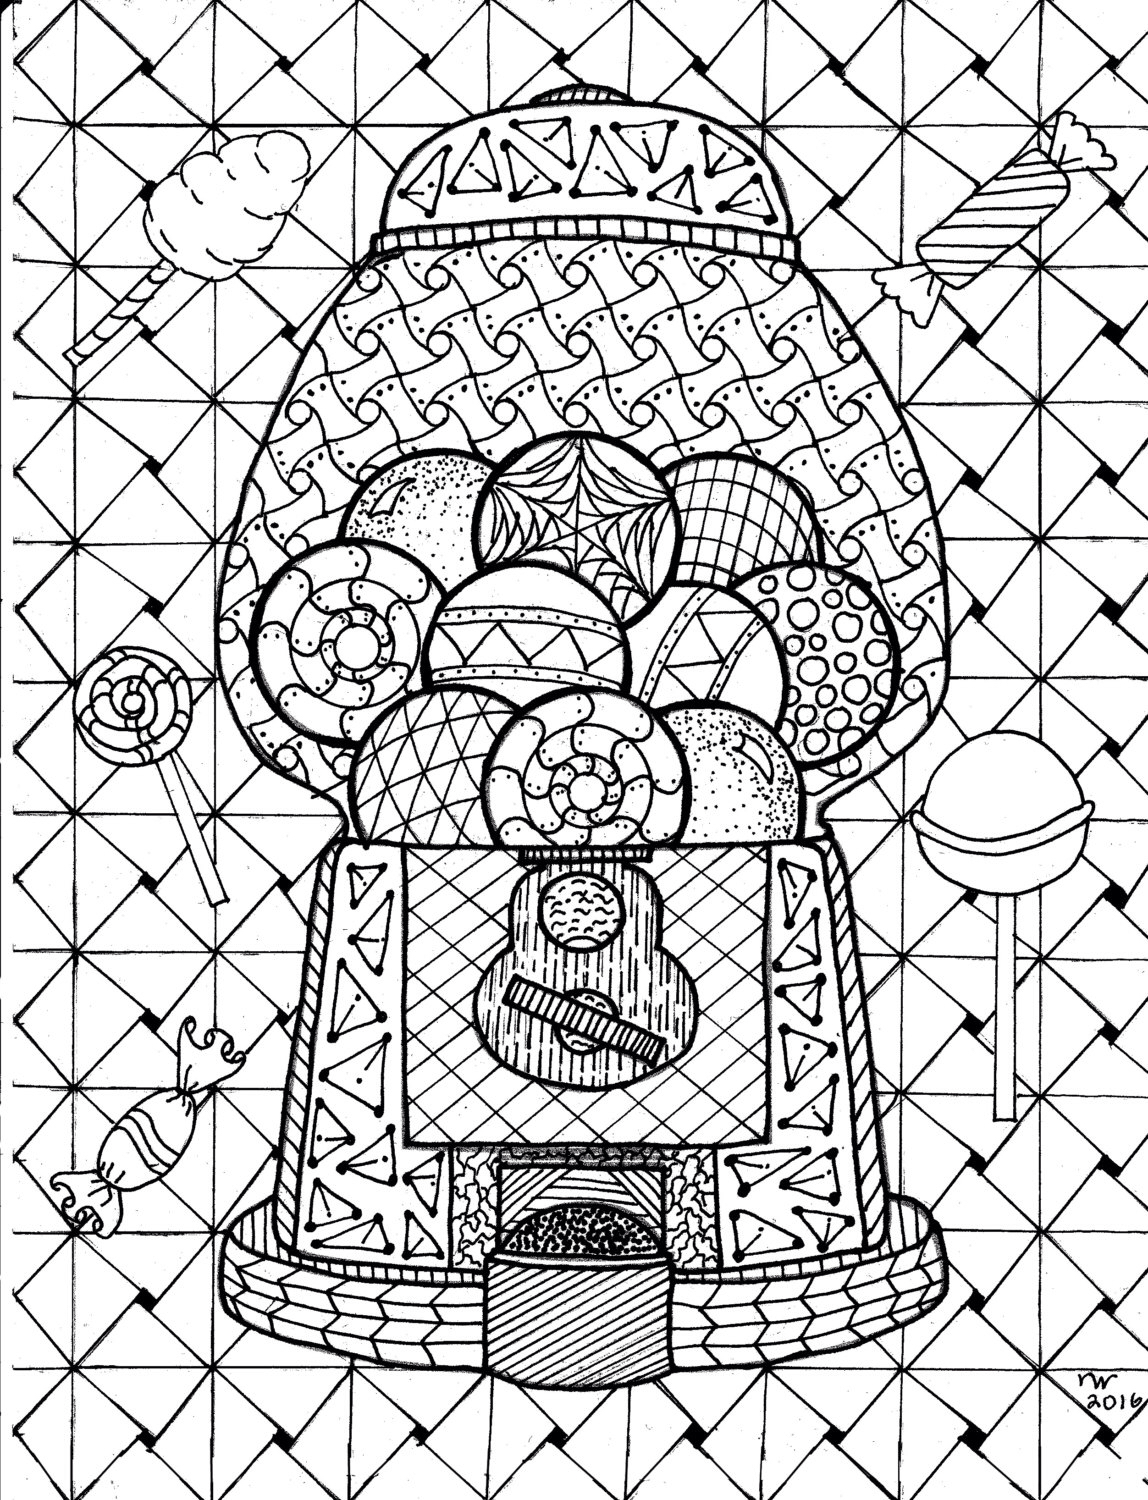 1148x1500 Gumball Machine Zentangle Coloring Page By Inspirationbyvicki